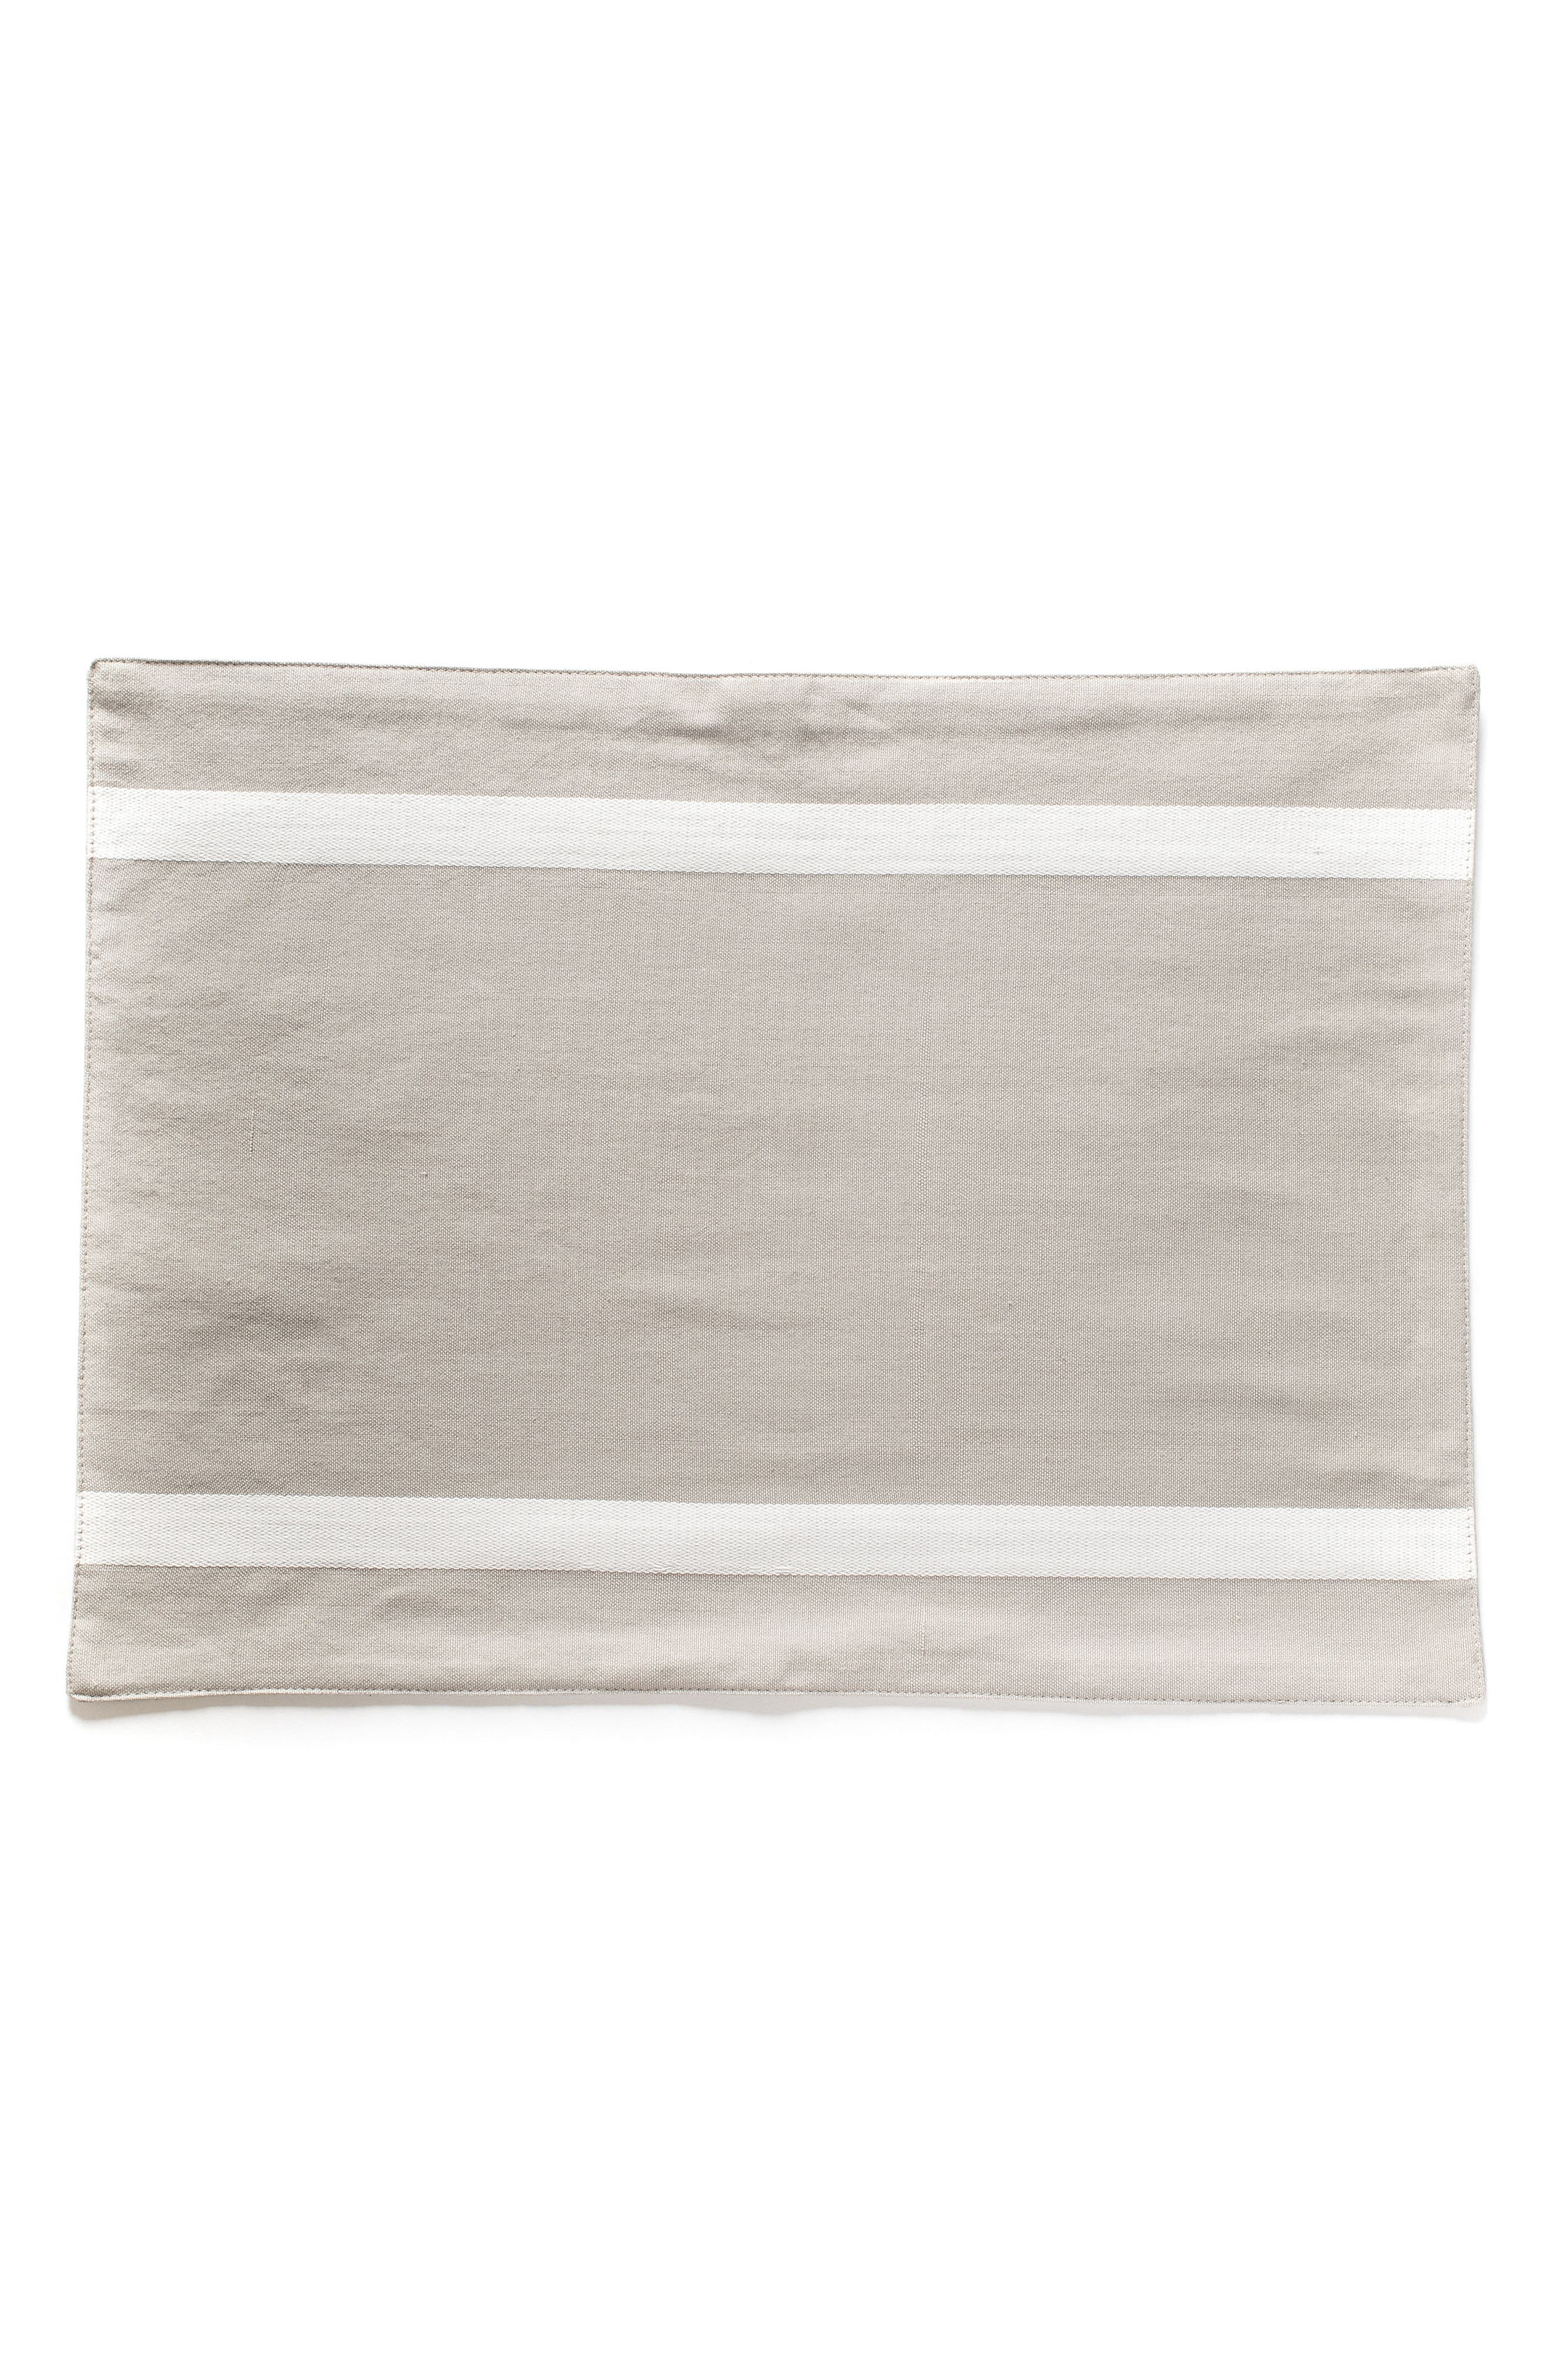 Piper Placemats,                         Main,                         color, Fog/ Gray